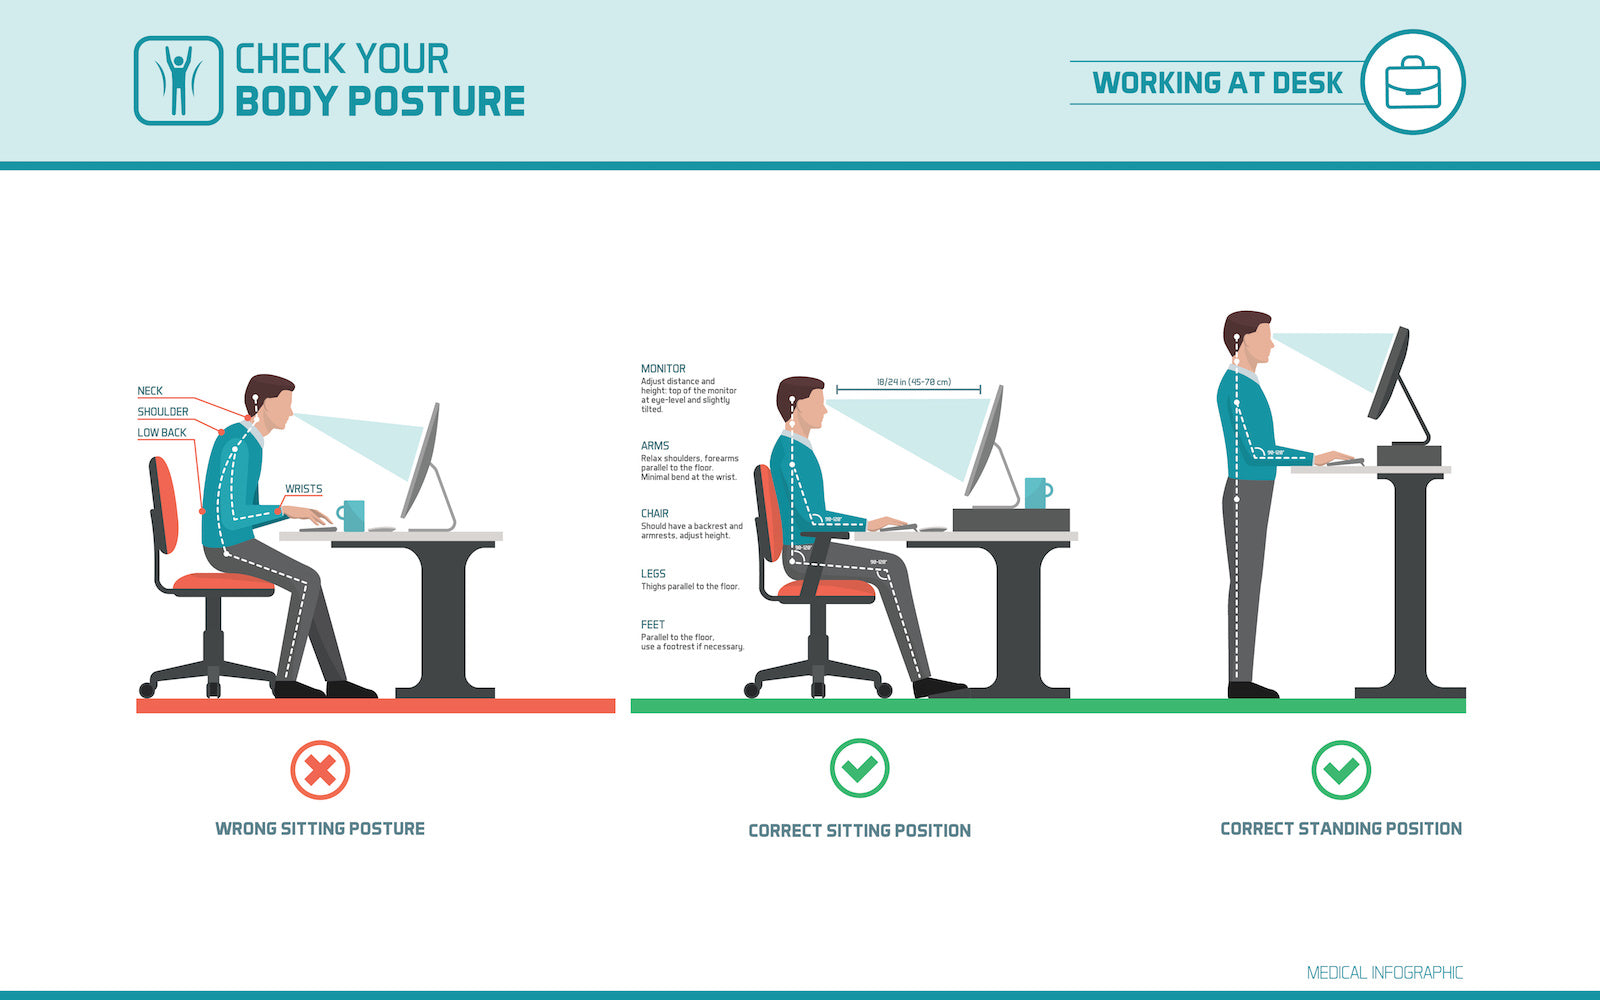 Proper Body Posture at desk while sitting and standing - info graphic